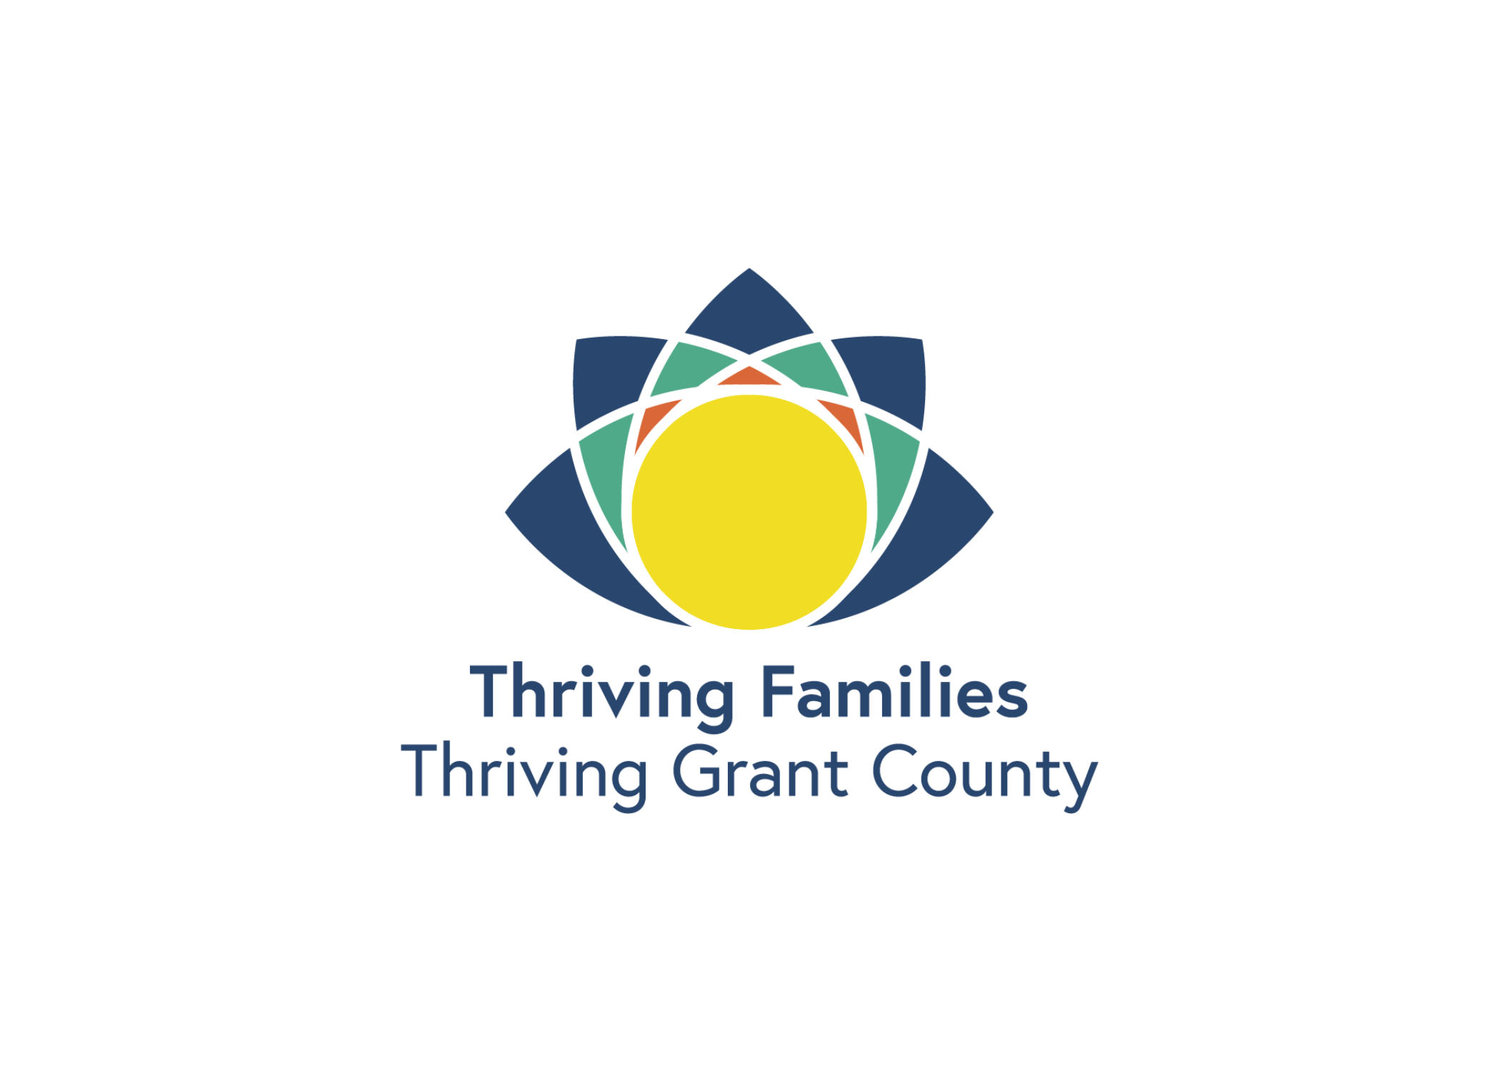 Thriving Families, Thriving Grant County